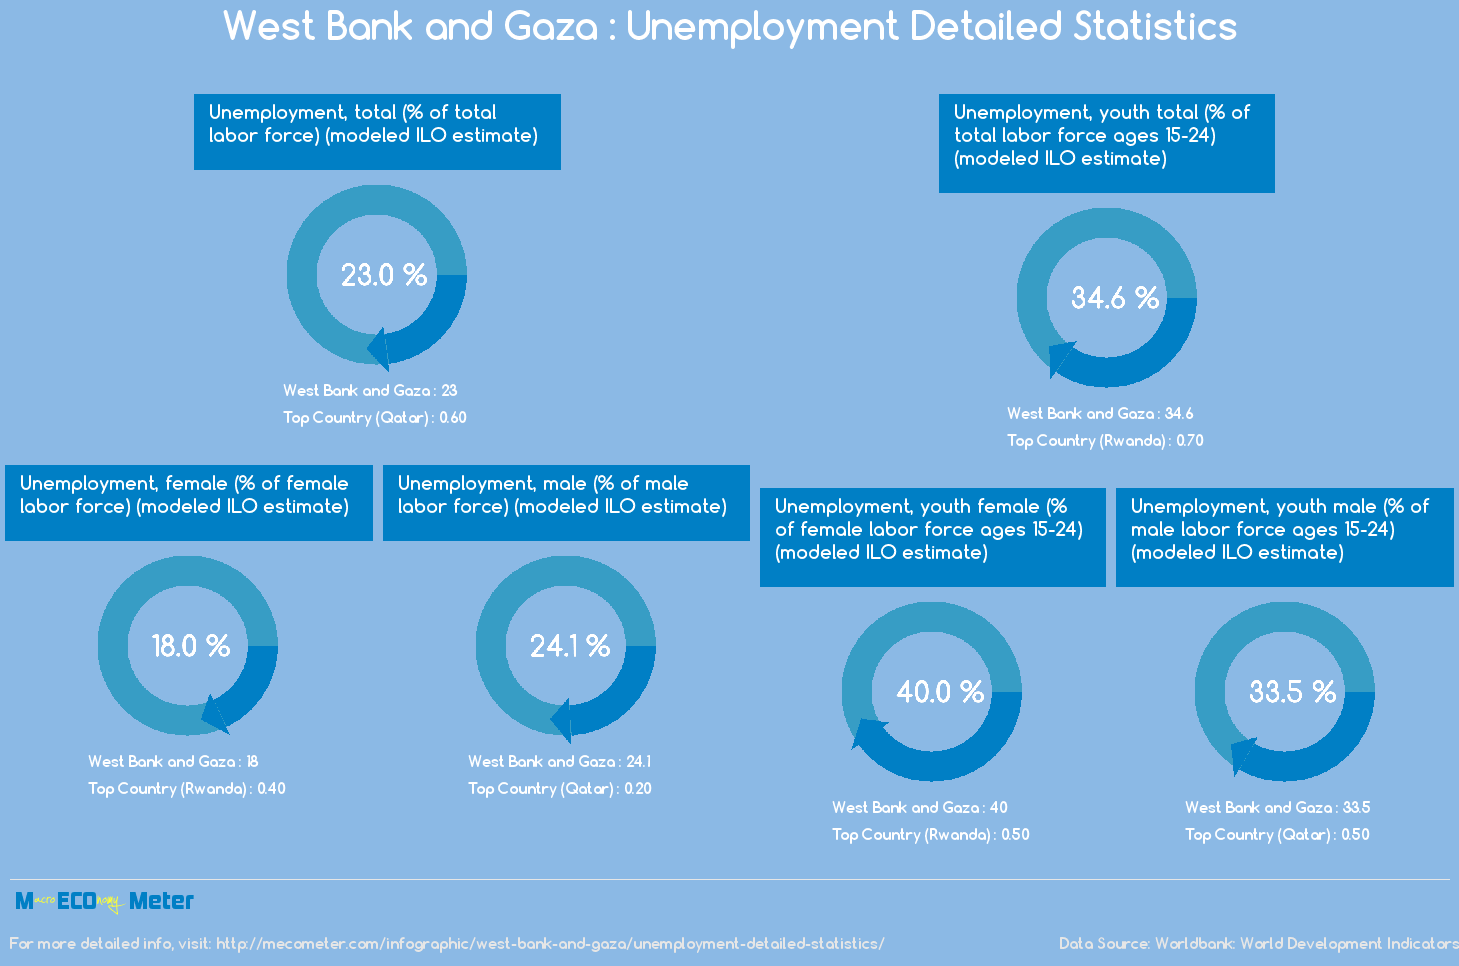 West Bank and Gaza : Unemployment Detailed Statistics